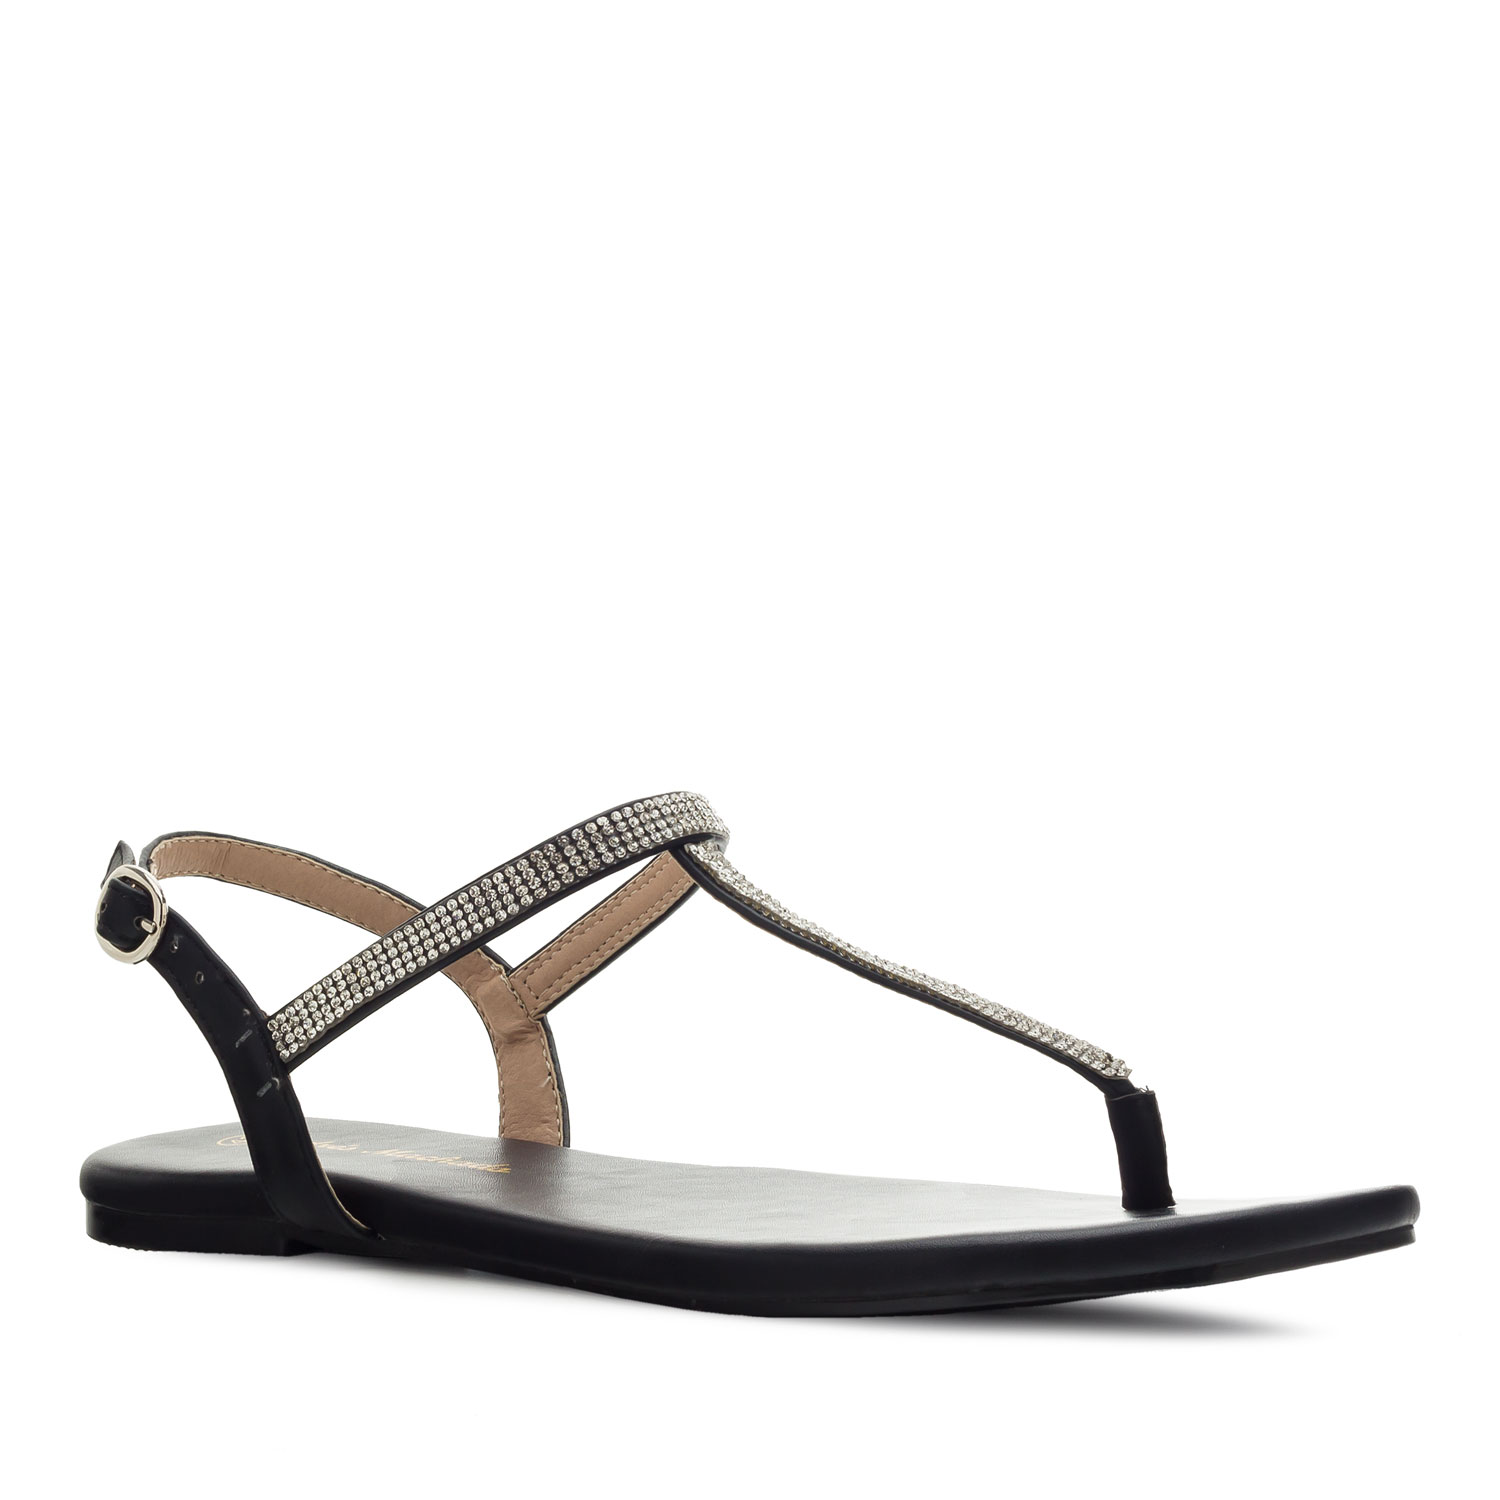 T-Bar Flat Sandals in Black faux Leather with Strass